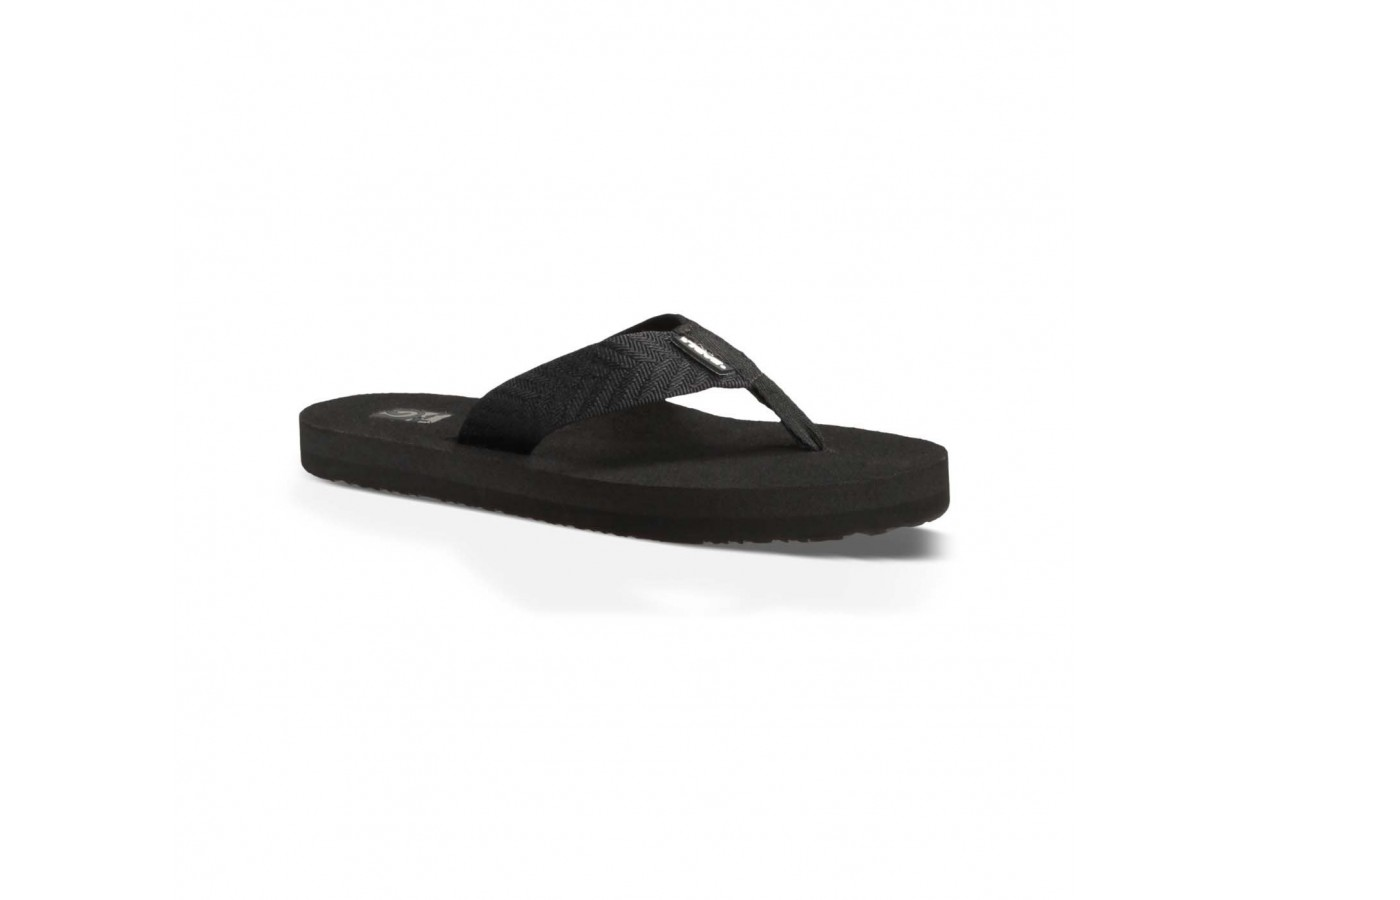 The Teva Mush offers an ultra durable upper for long-term wear.